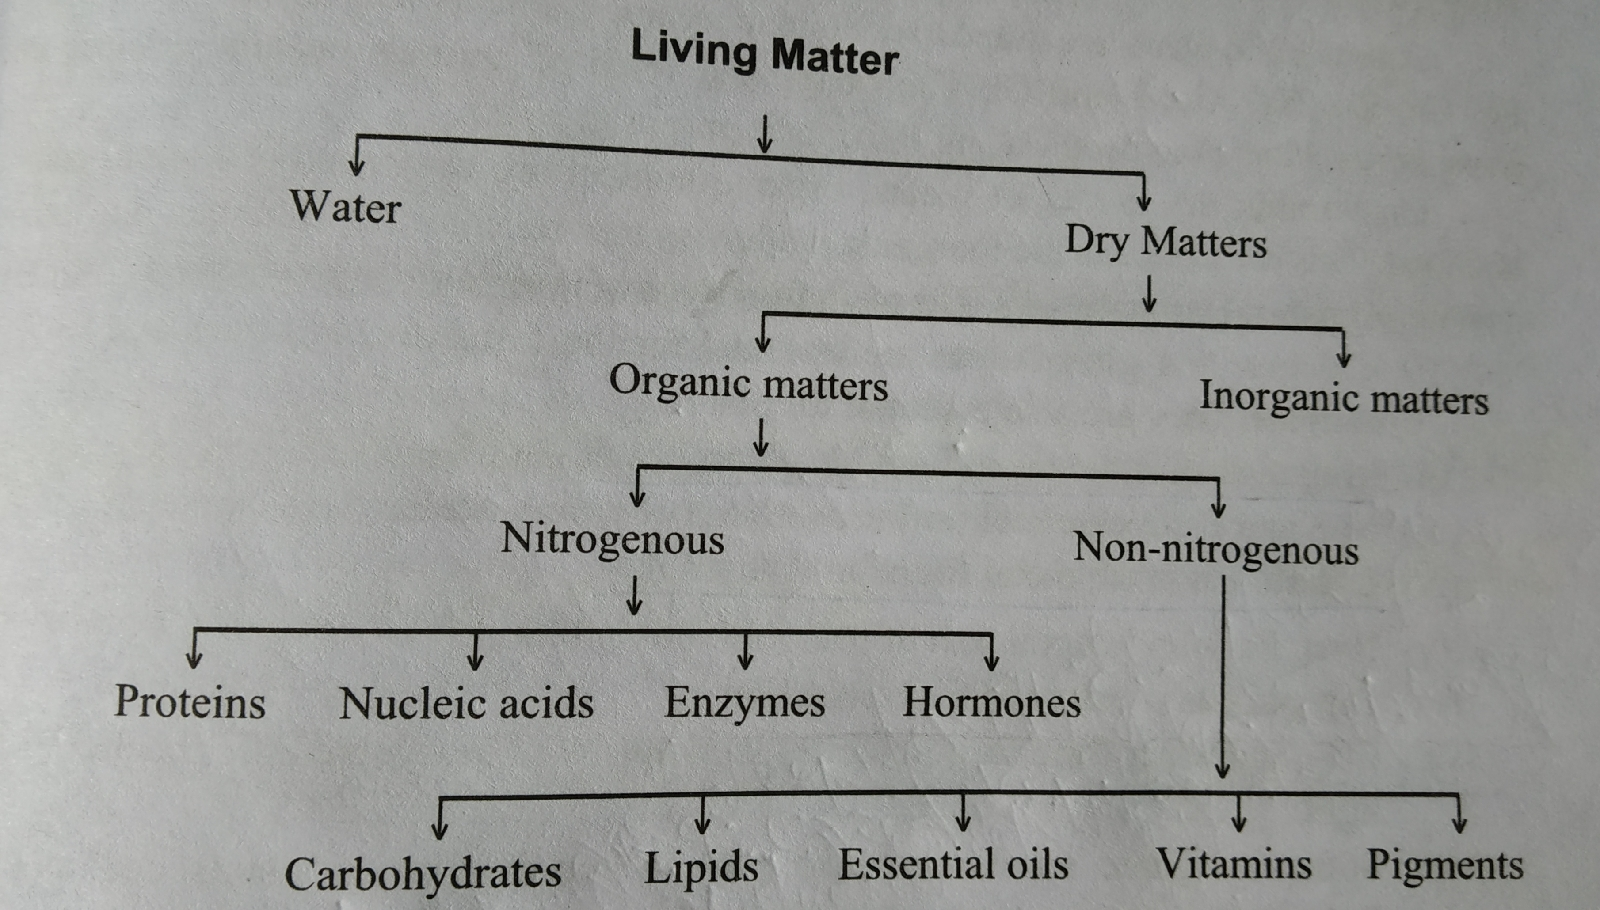 Classification of constituents of living bodies